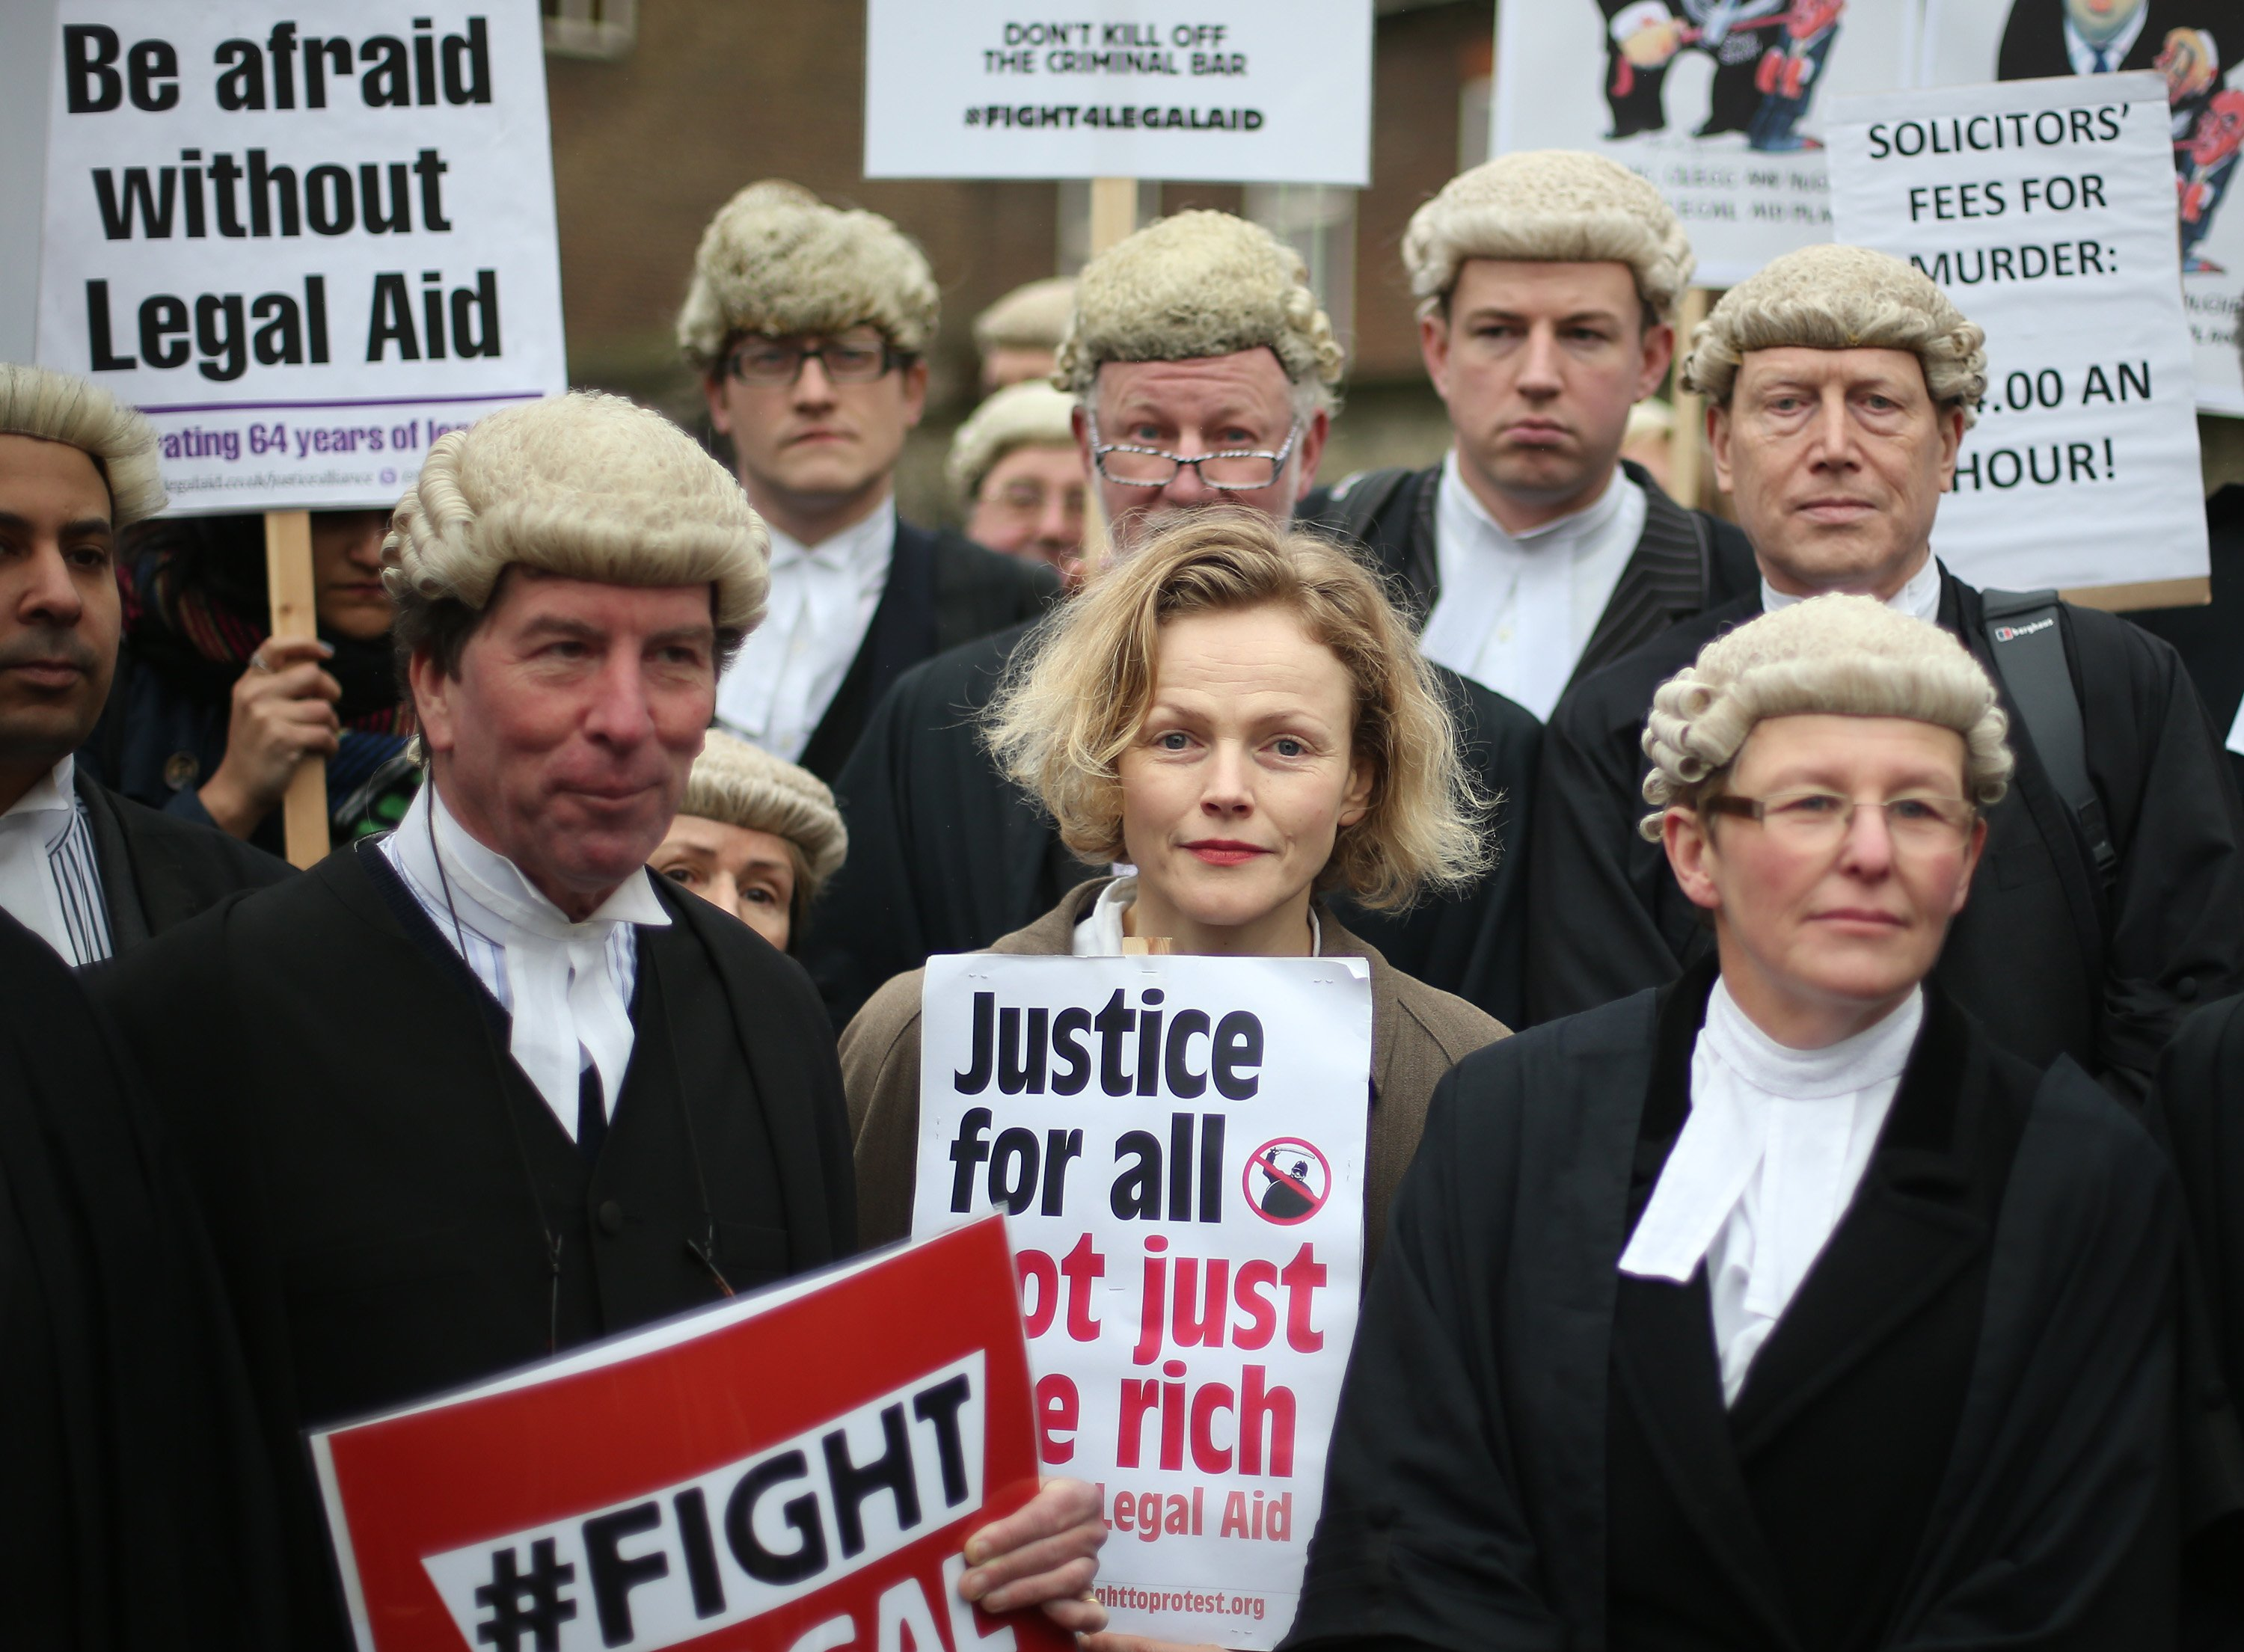 legal aid protest actress maxine peake with barristers in wigs and gowns. sign reads justice for all, not just the rich